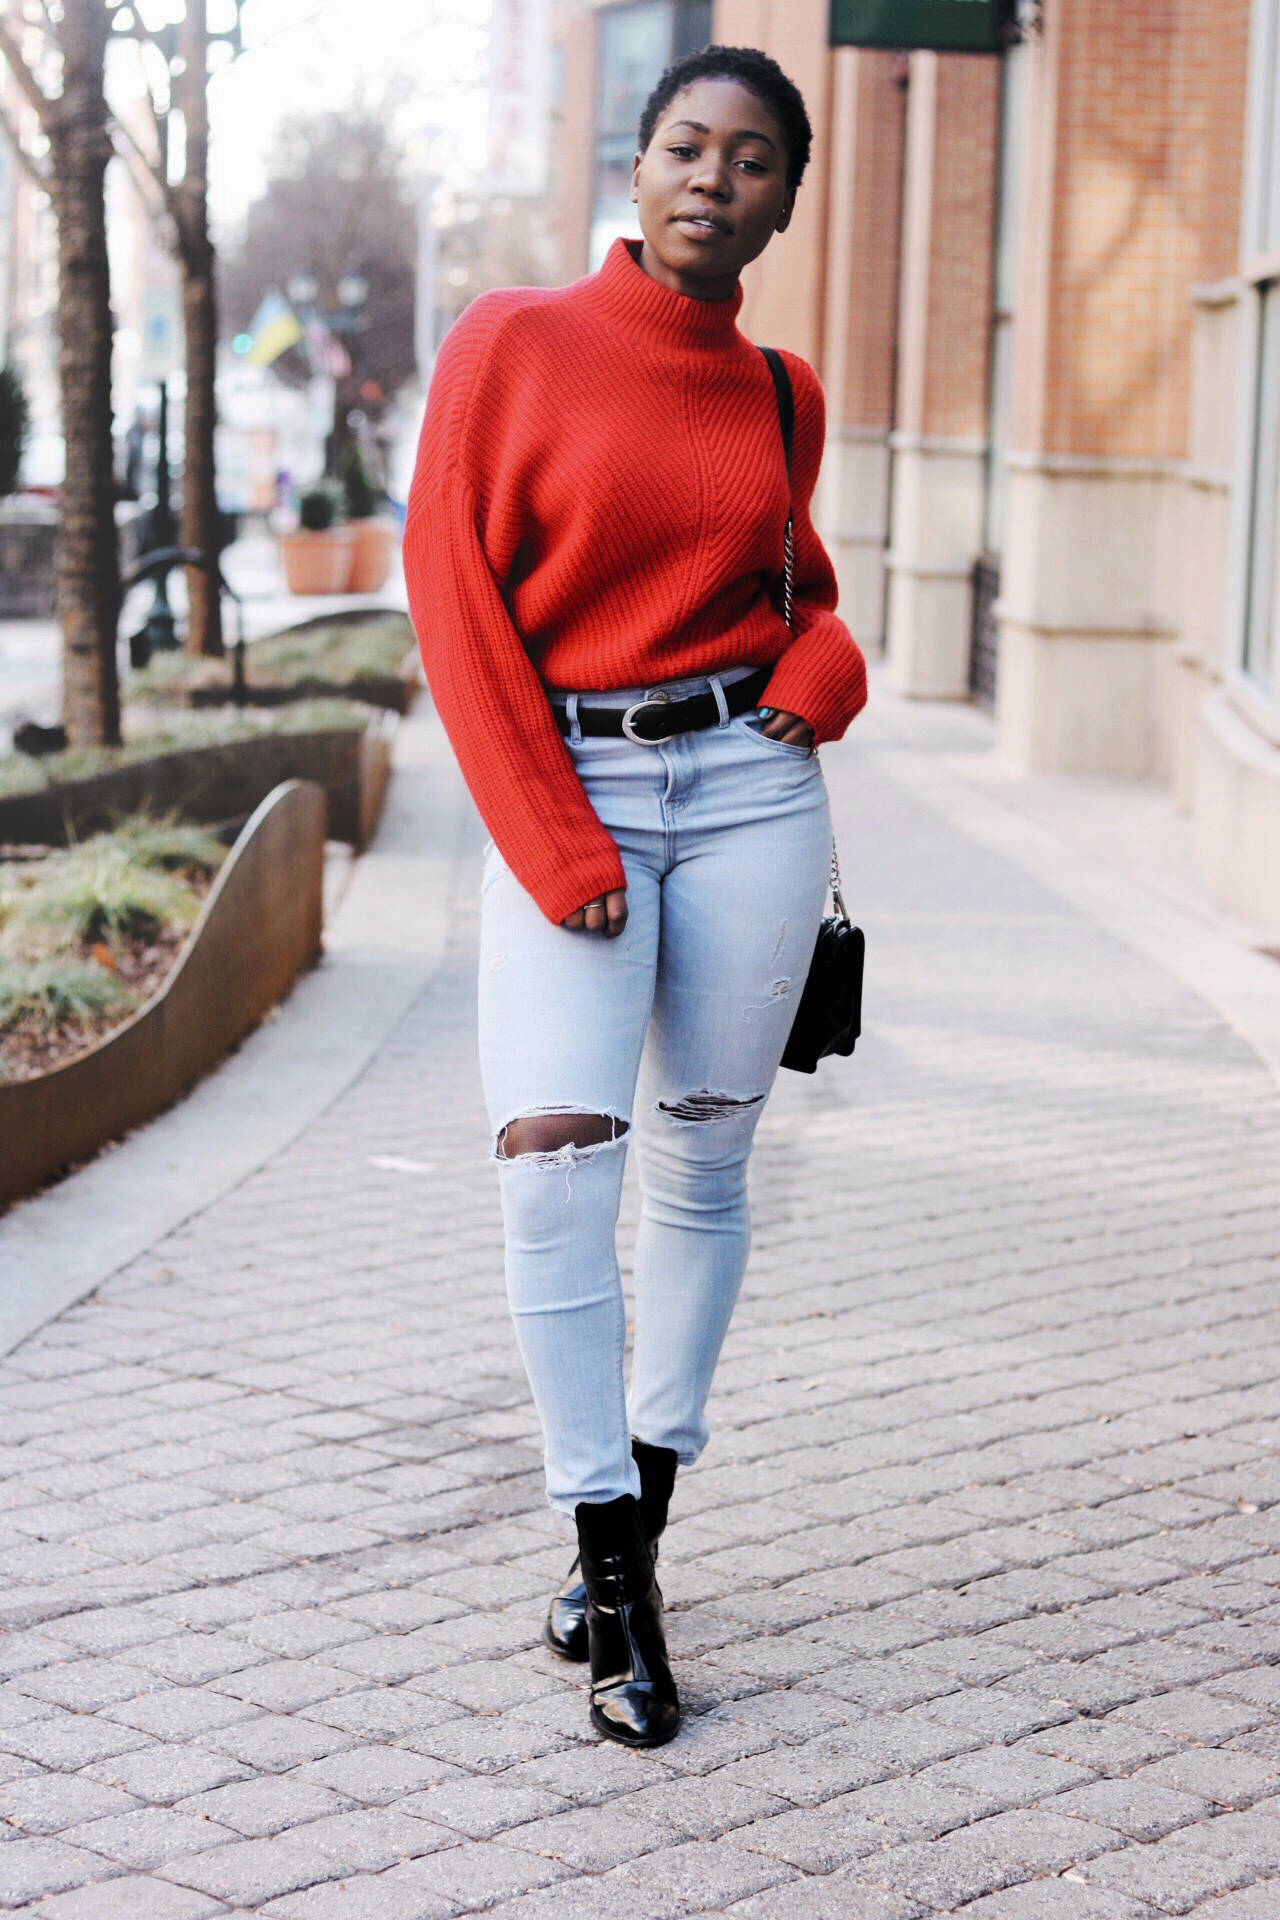 ALT= 2017 chic red sweater looks